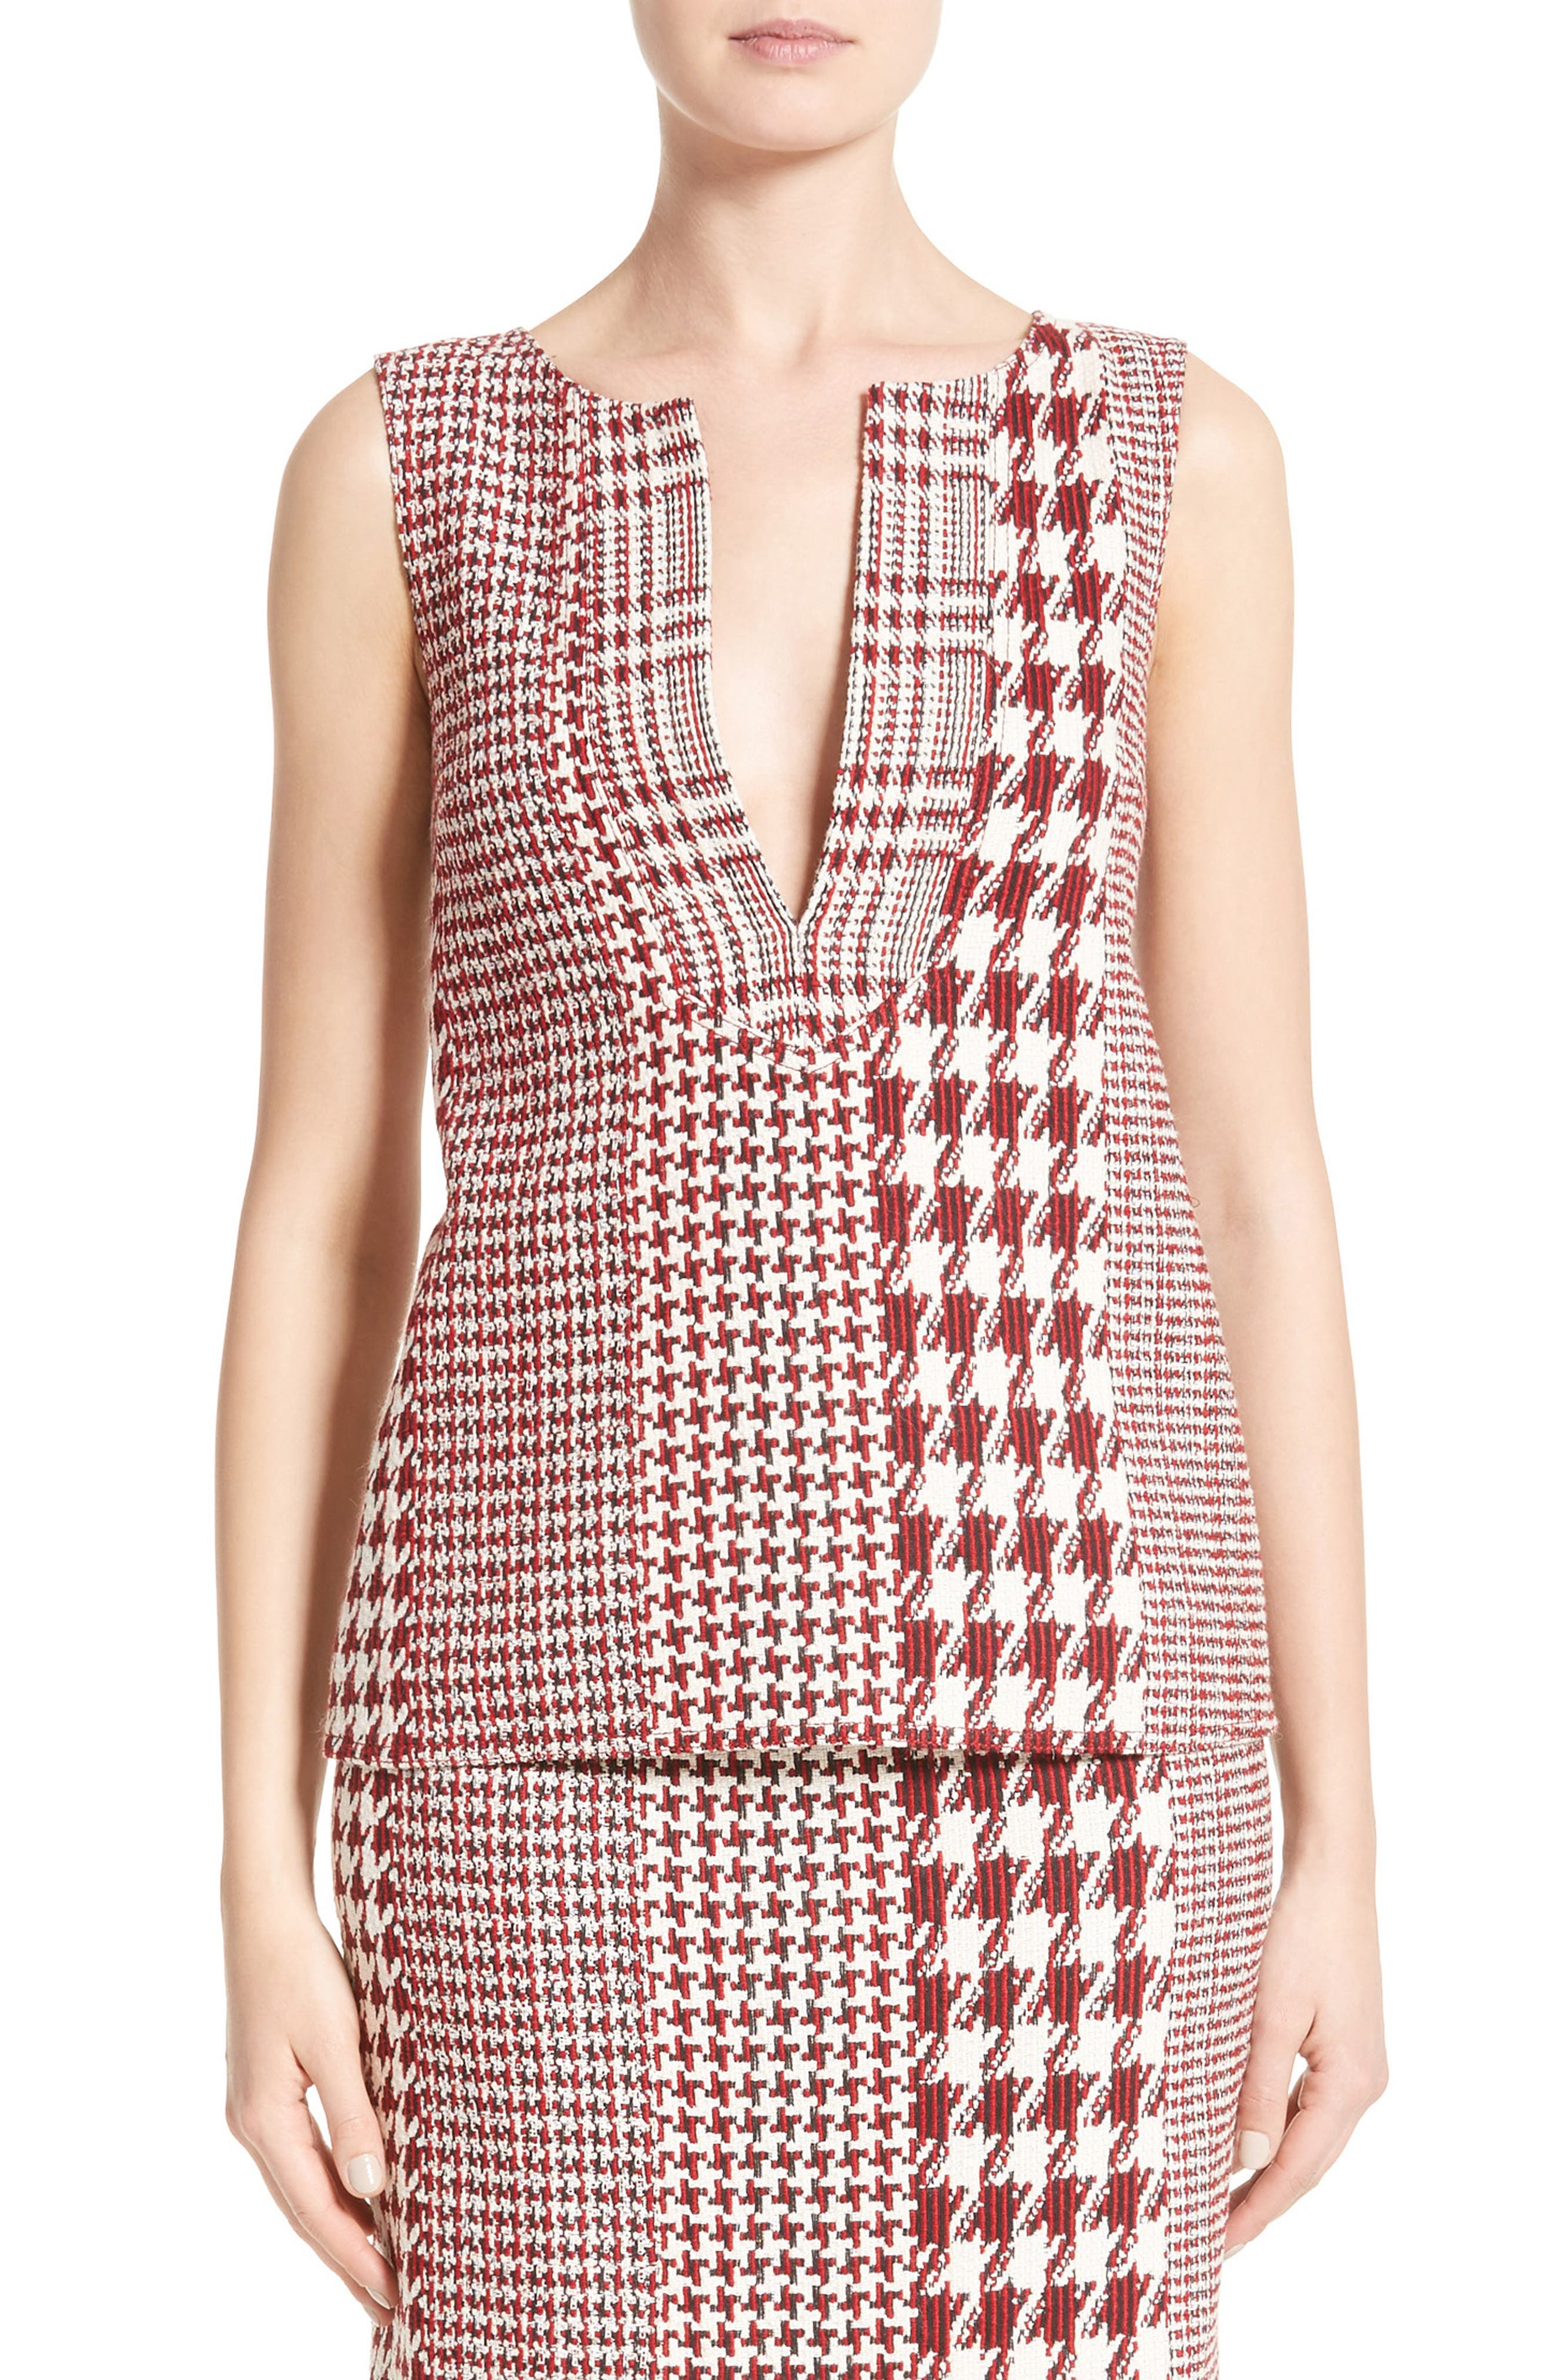 Houndstooth Watteau Blouse,                         Main,                         color, Red Multi